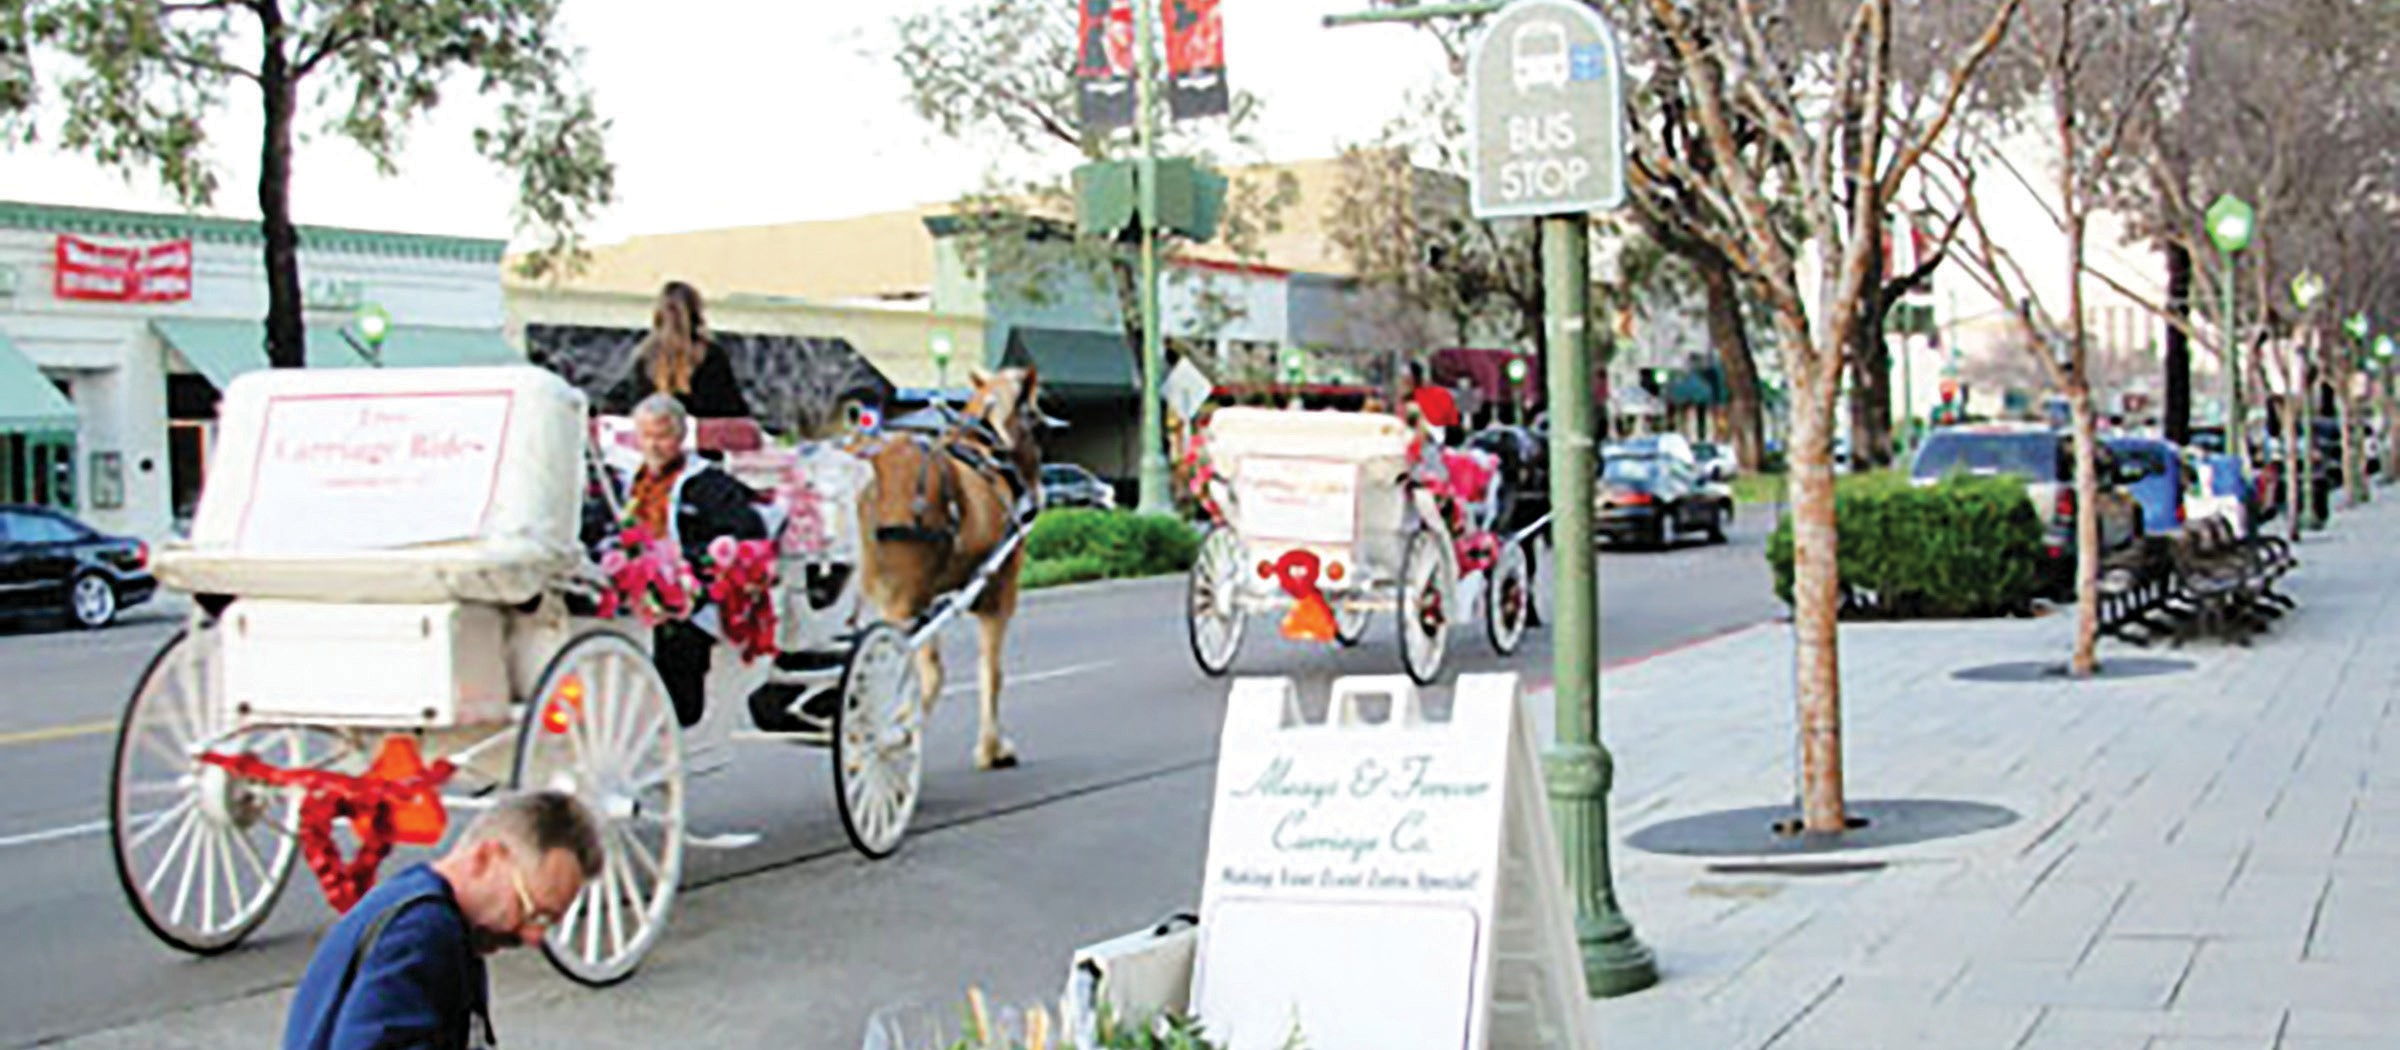 Carriages will be available during the chocolate festival for romantic drives around the Historic Downtown.